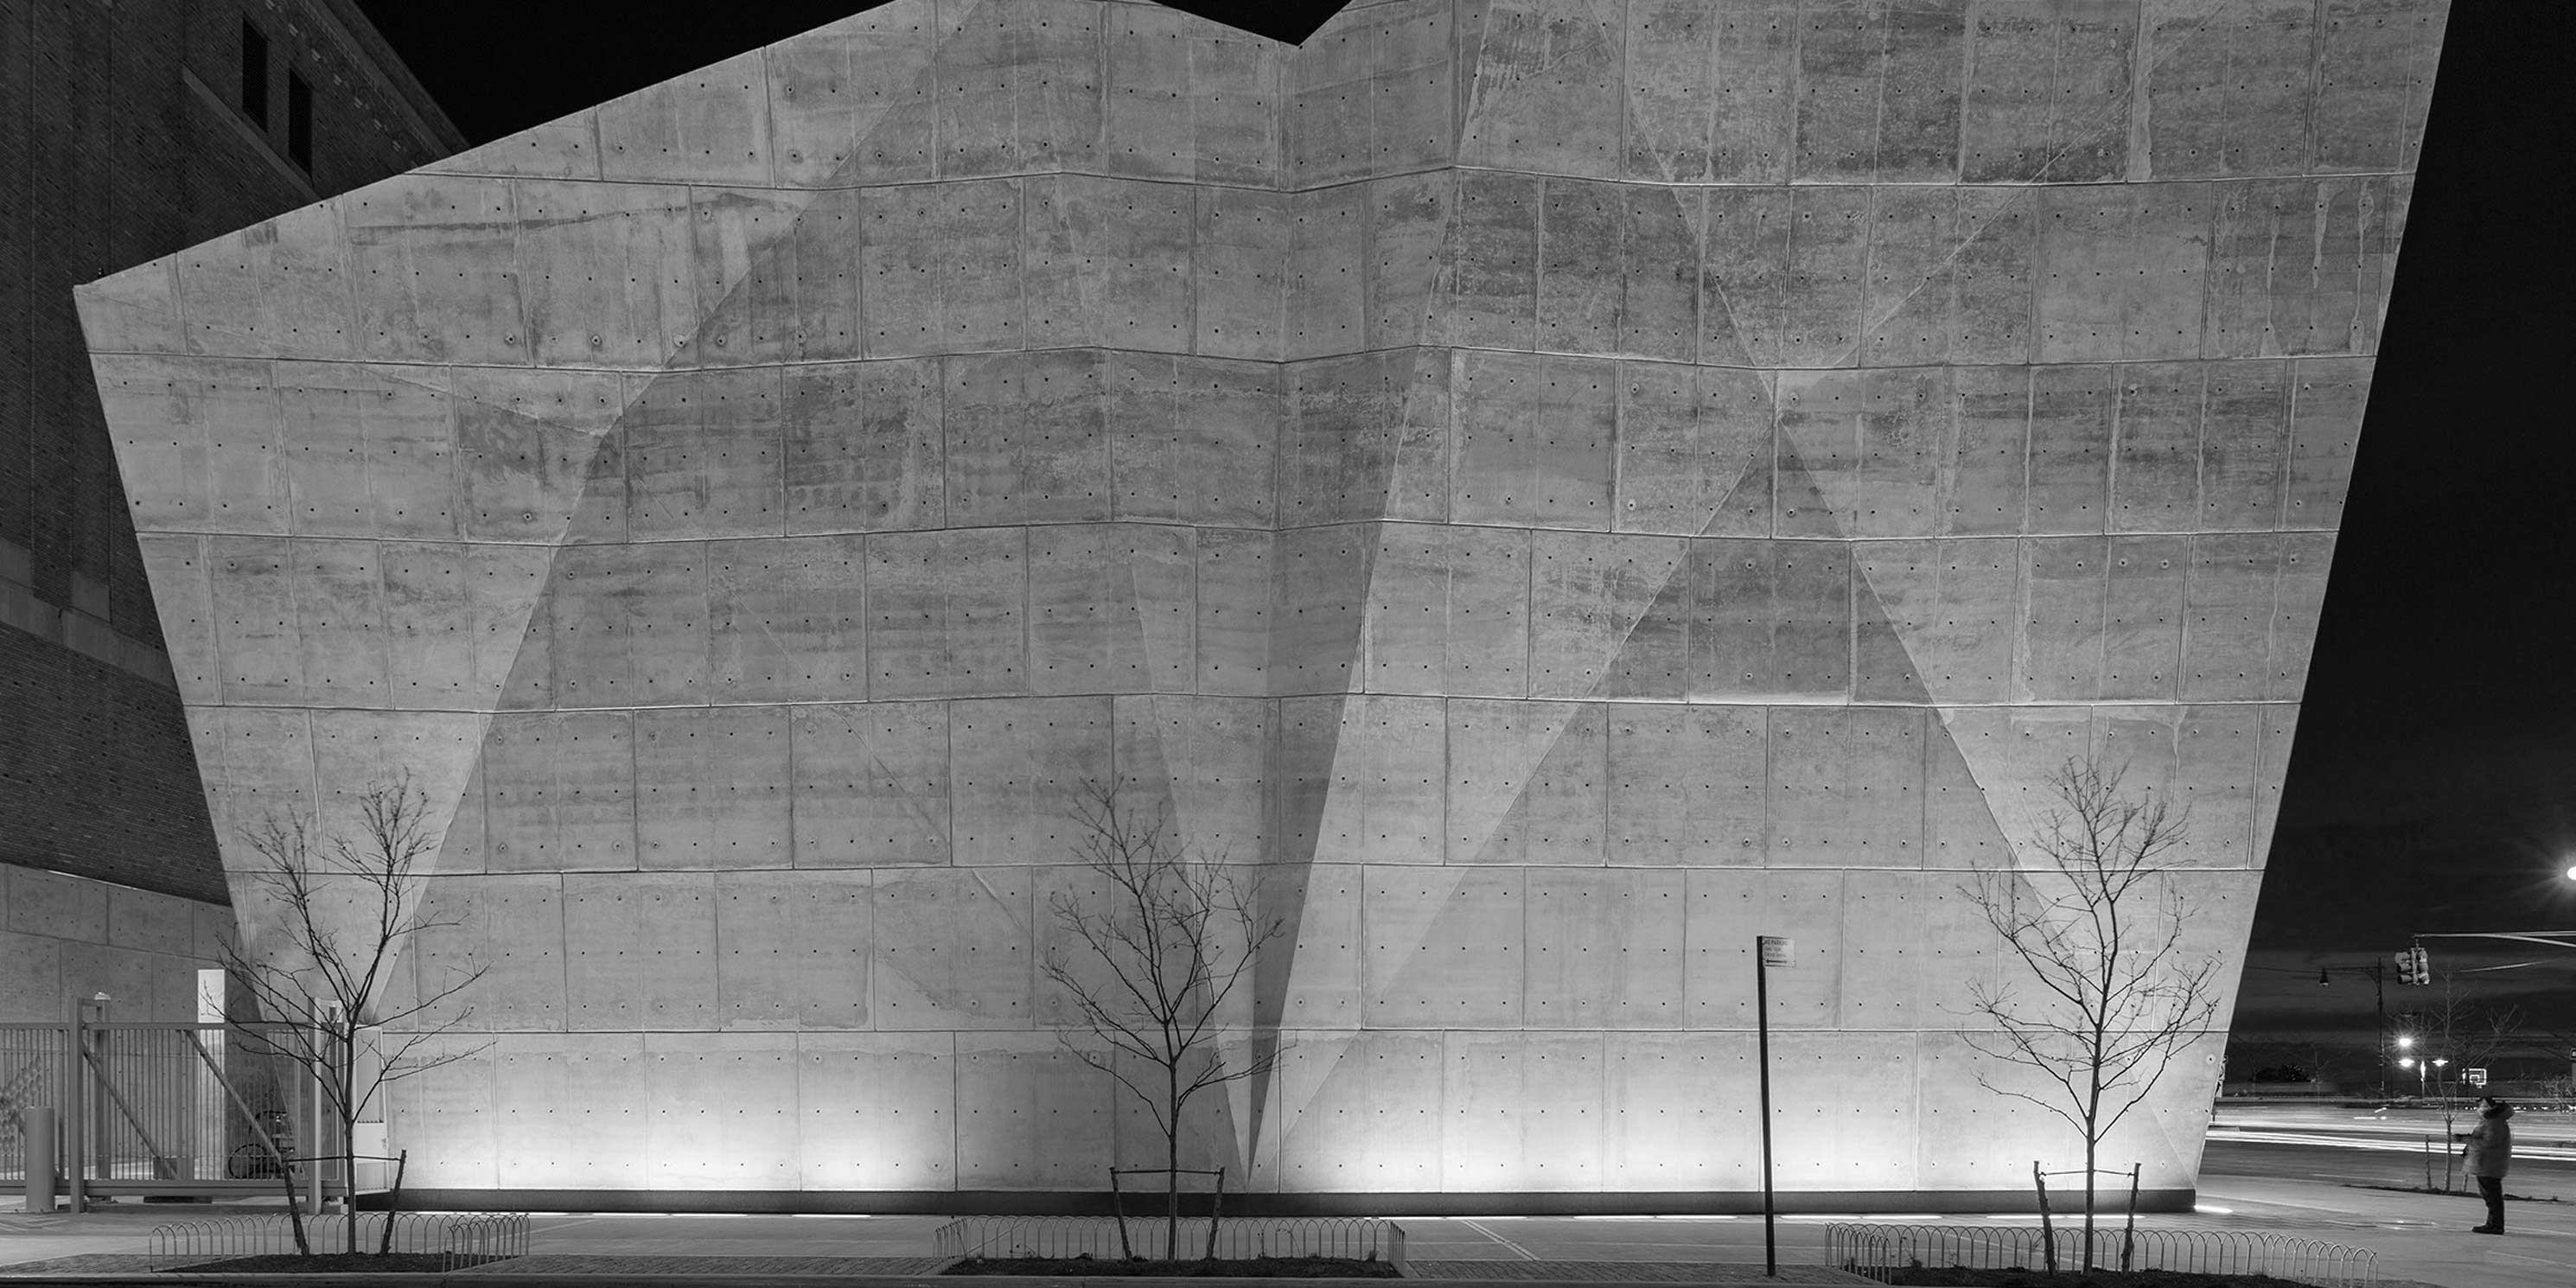 Exterior of the Salt Shed garage at night